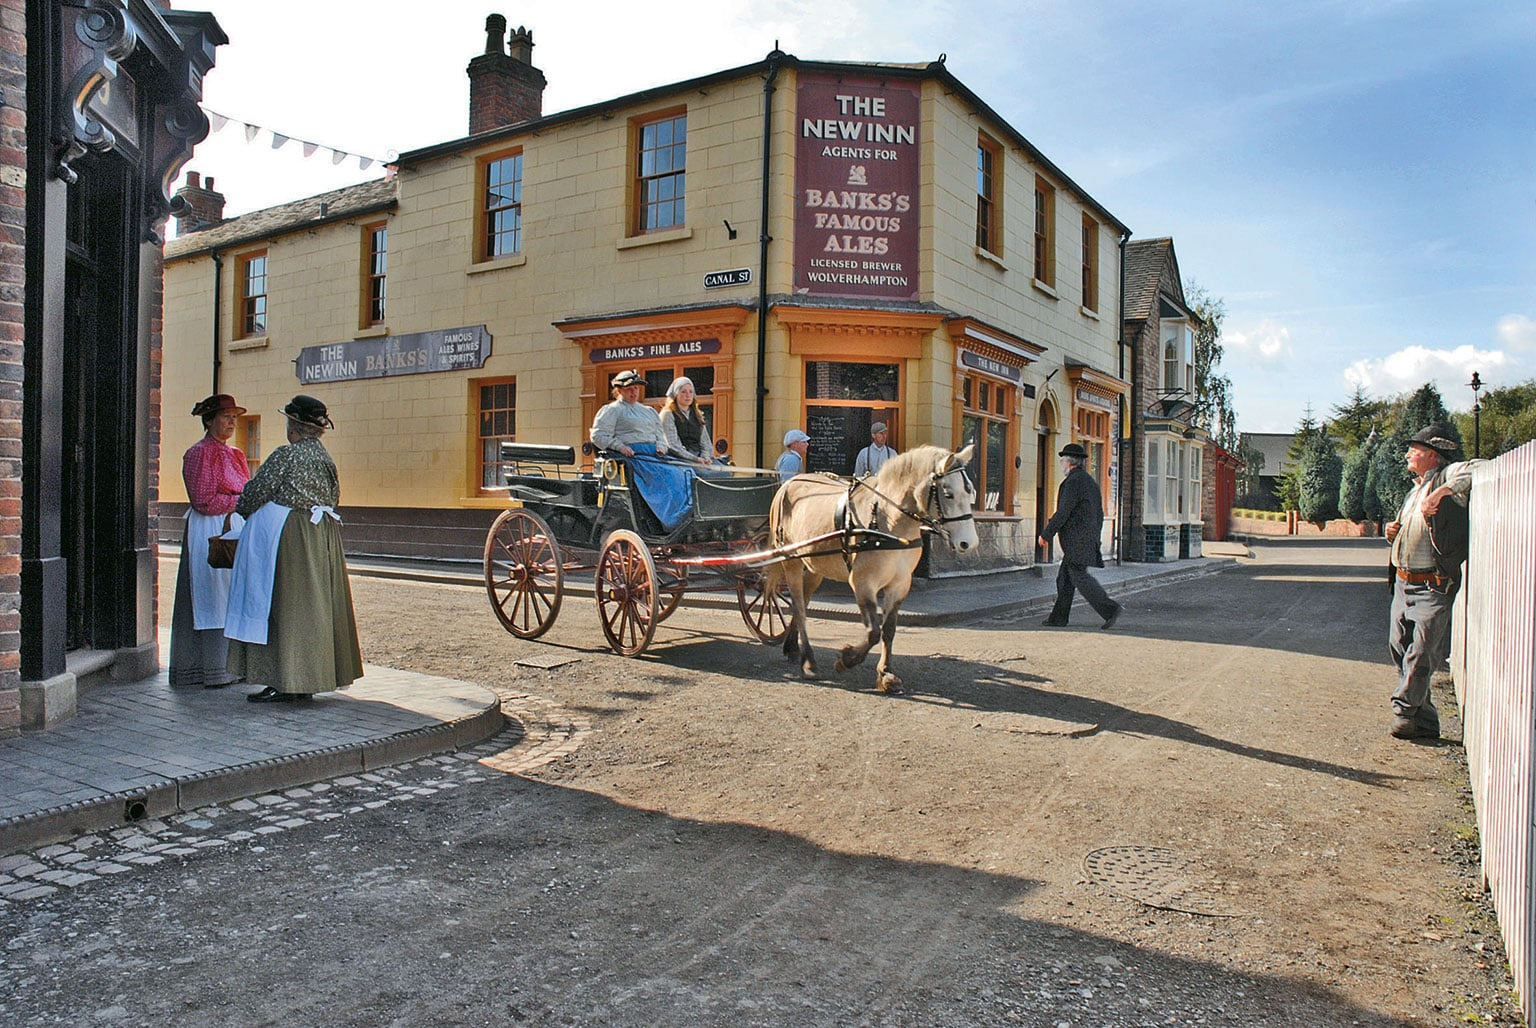 3. Blists Hill Victorian Town, Shropshire (part of Ironbridge Gorge Museum) - Free entry with National Art Pass